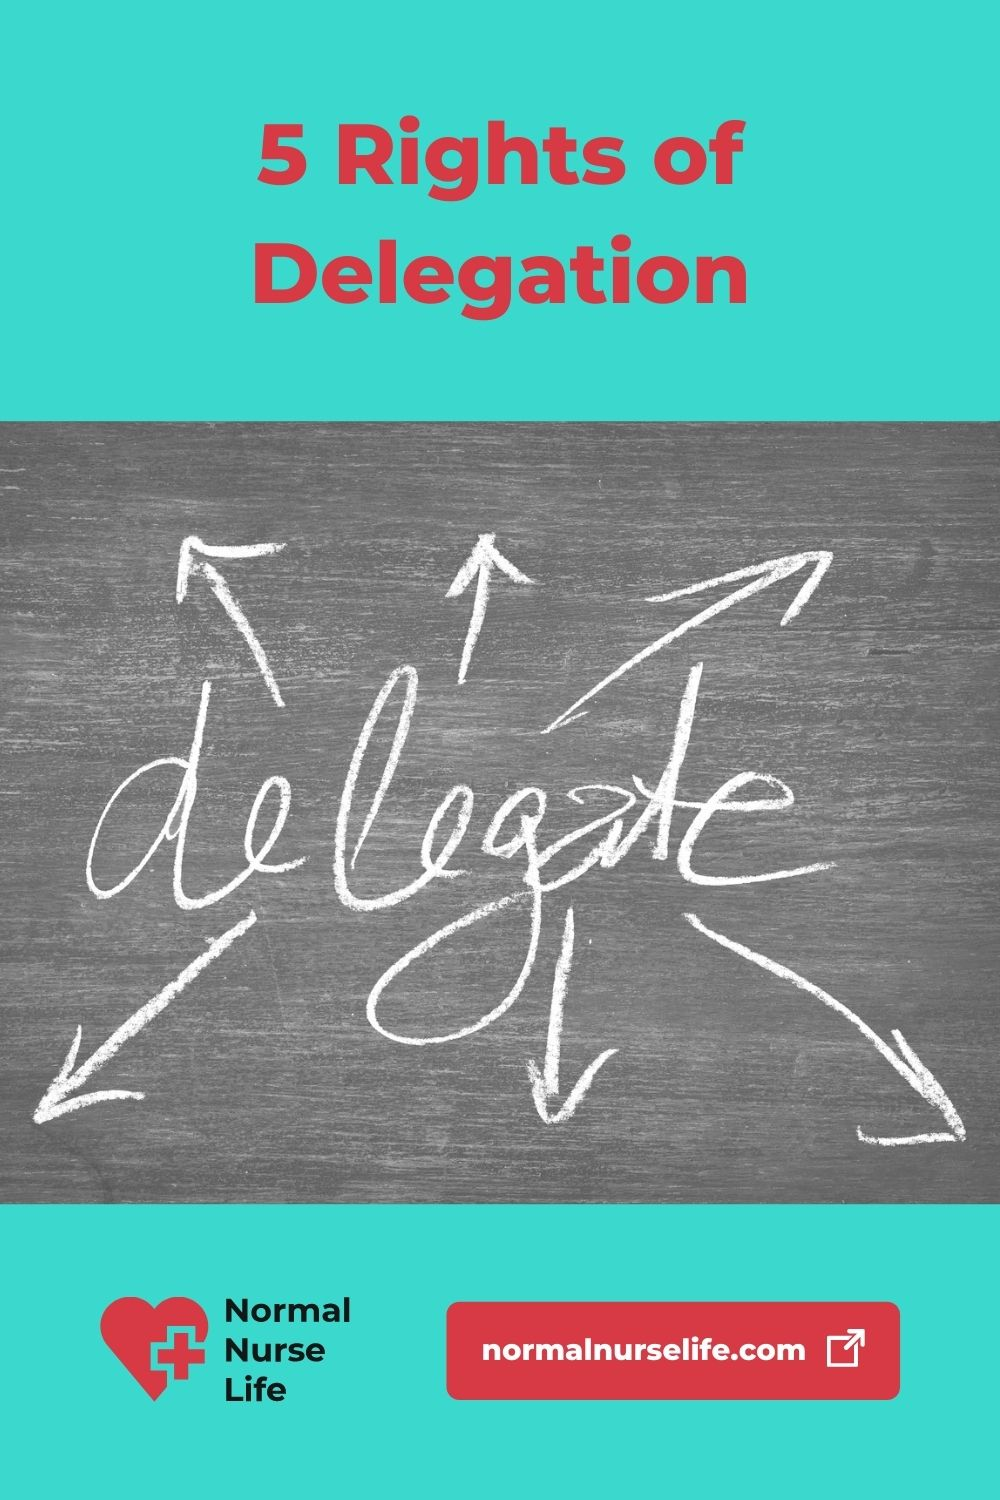 The 5 Rights of Delegation in Nursing